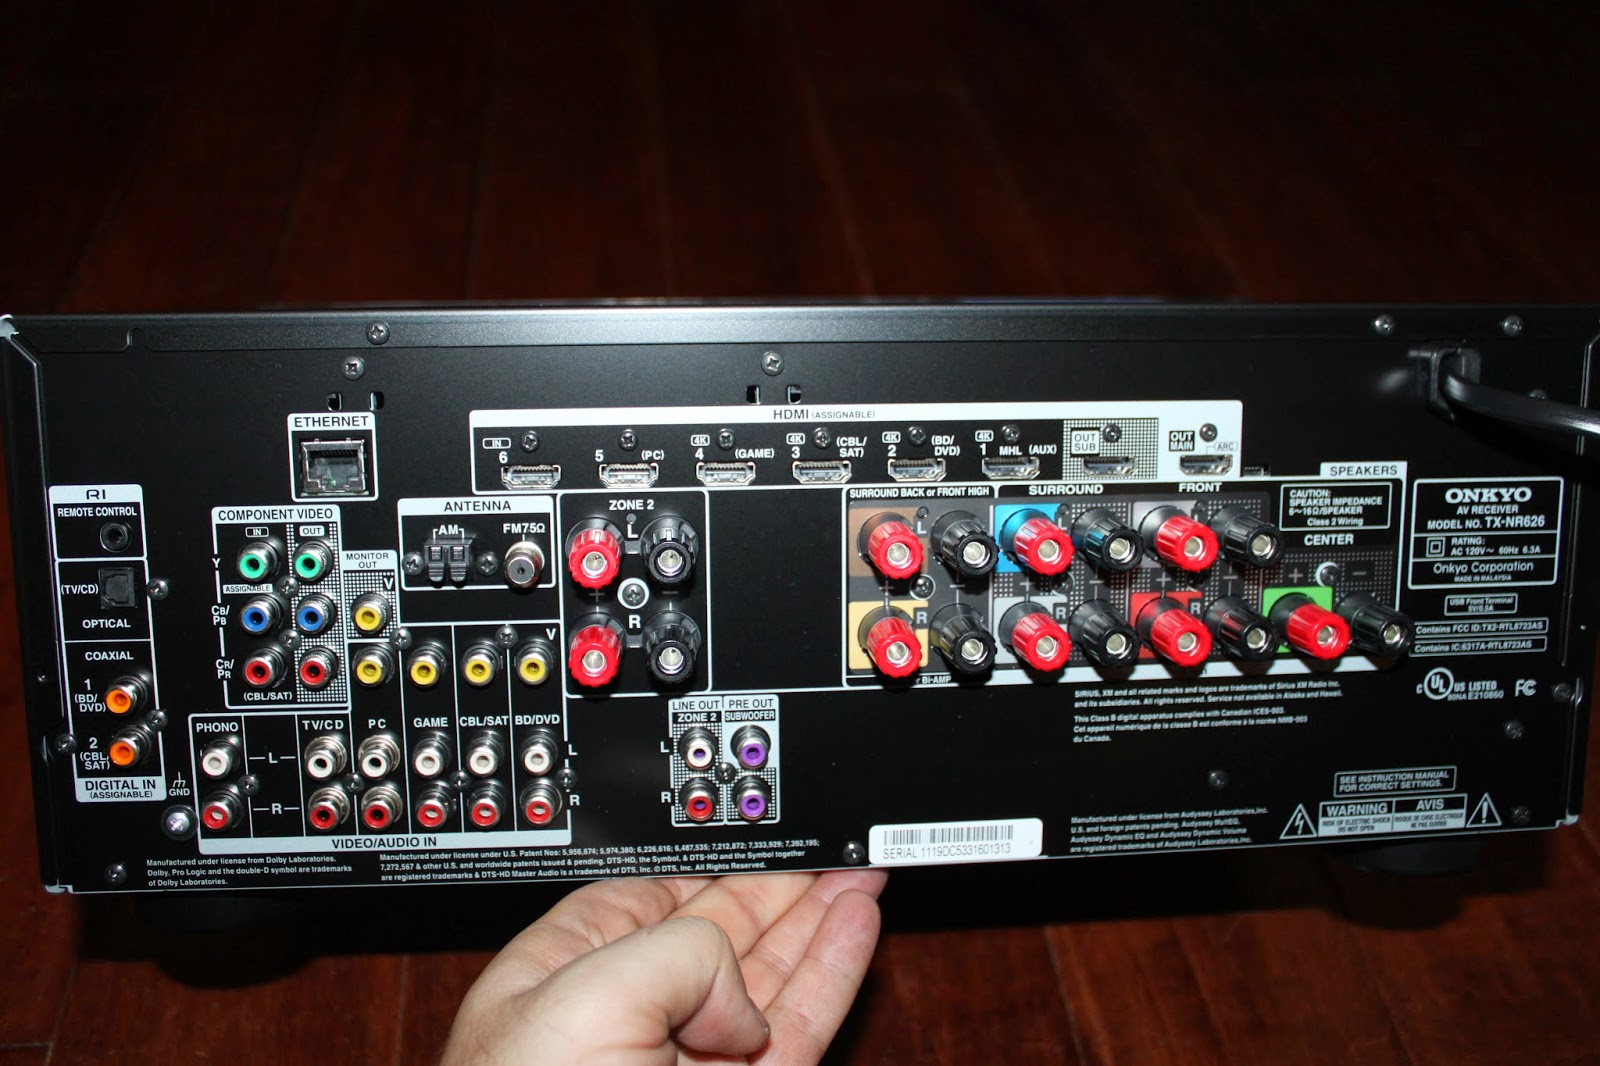 Stereowise Plus: Onkyo TX-NR626 7 2 Channel Network A/V